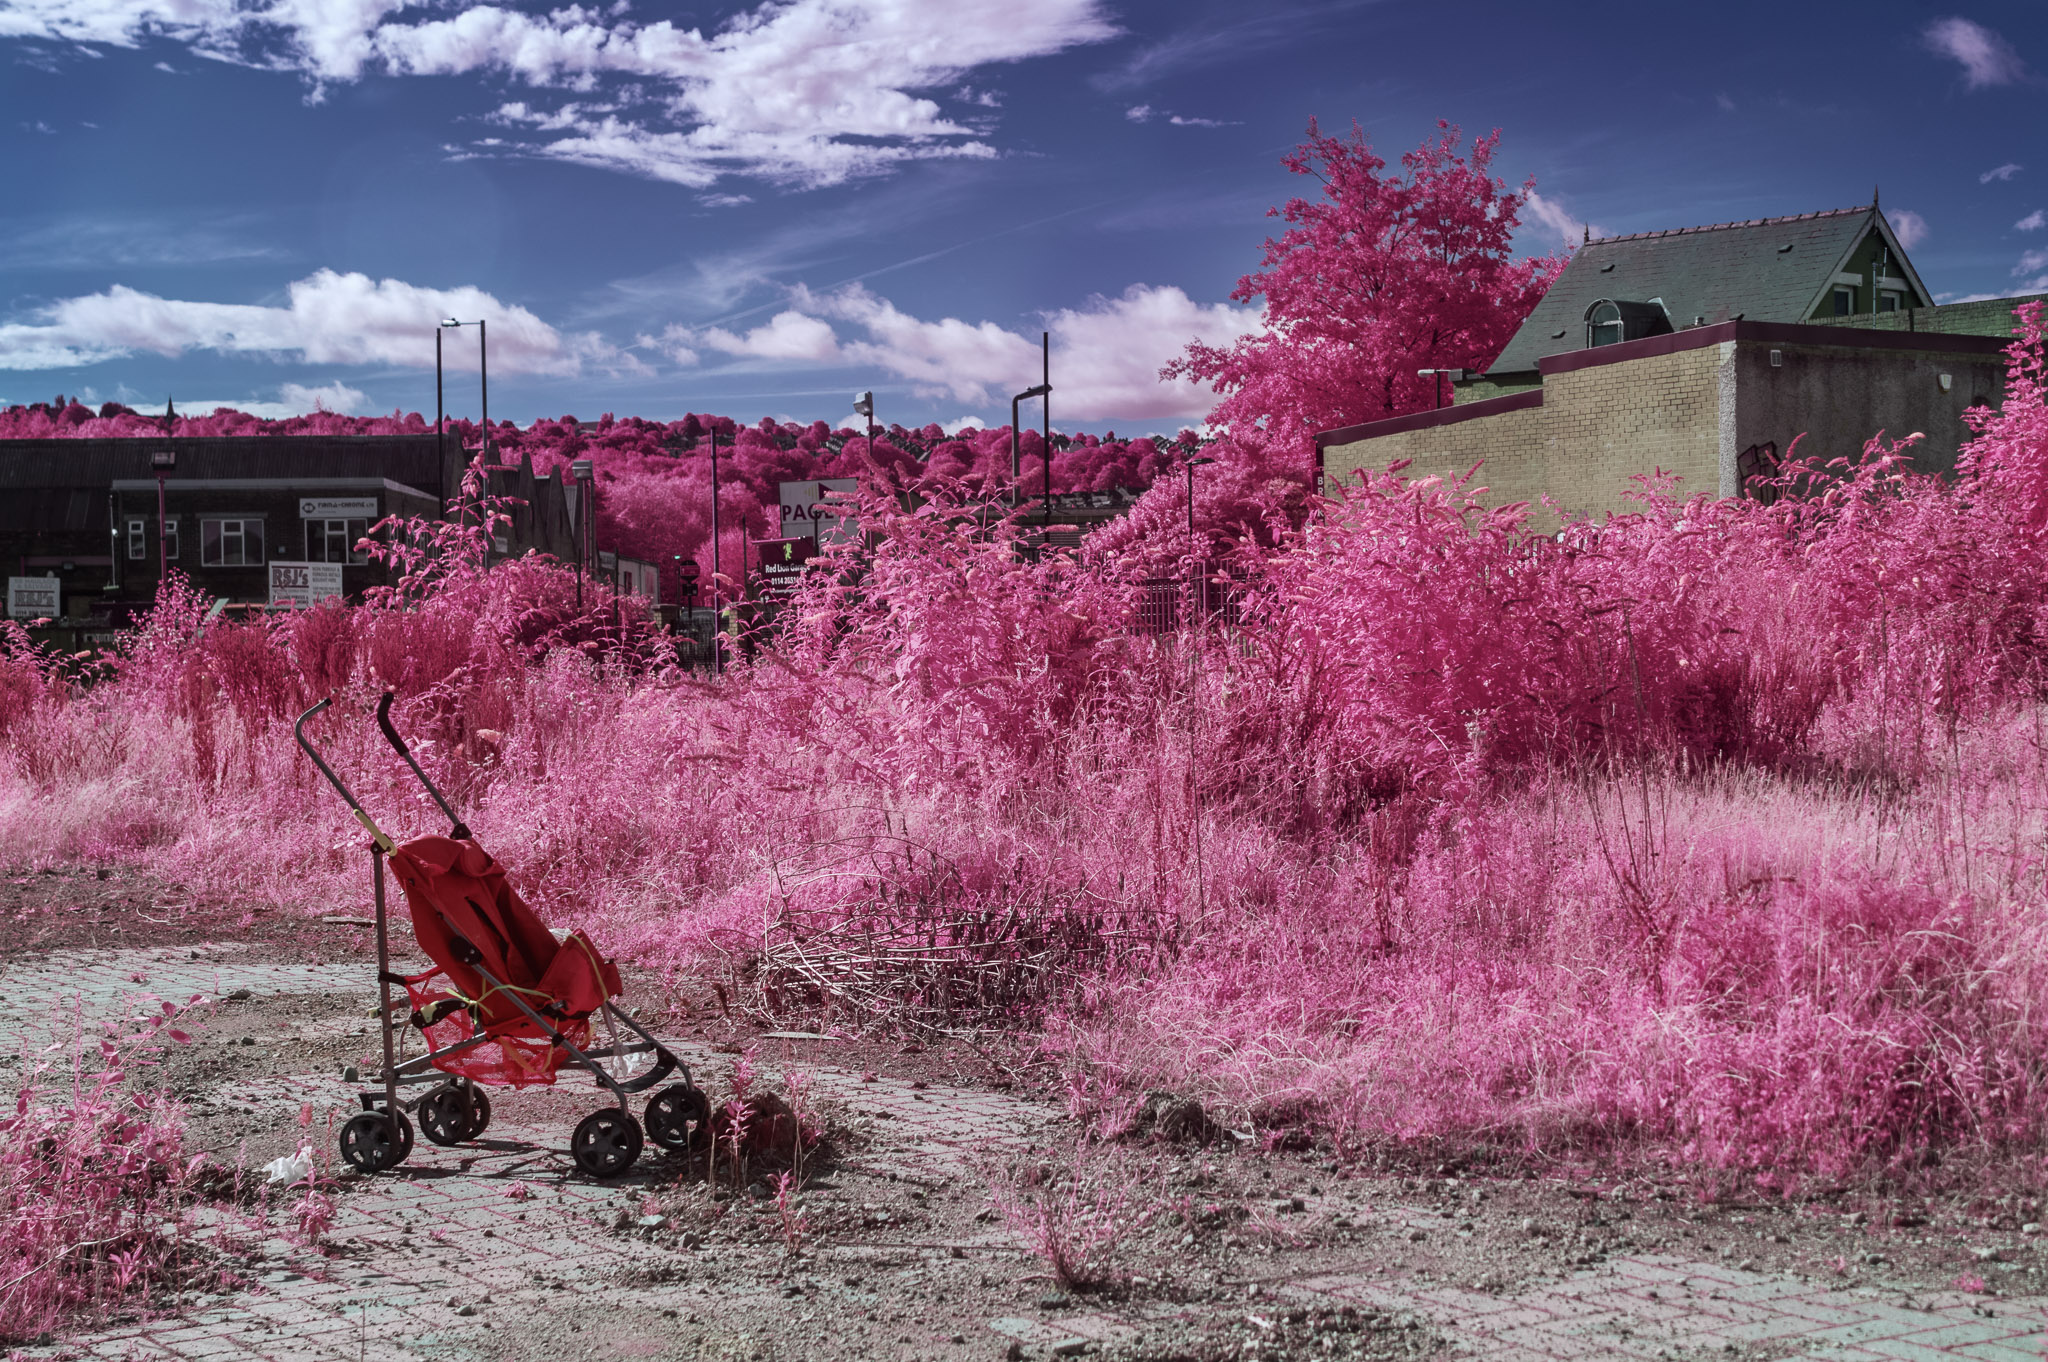 Kodak EIR Colour Infrared, Edgelands, Wasteland, Out of sight,  Push chair, Stroller, ©Jonny Sutton